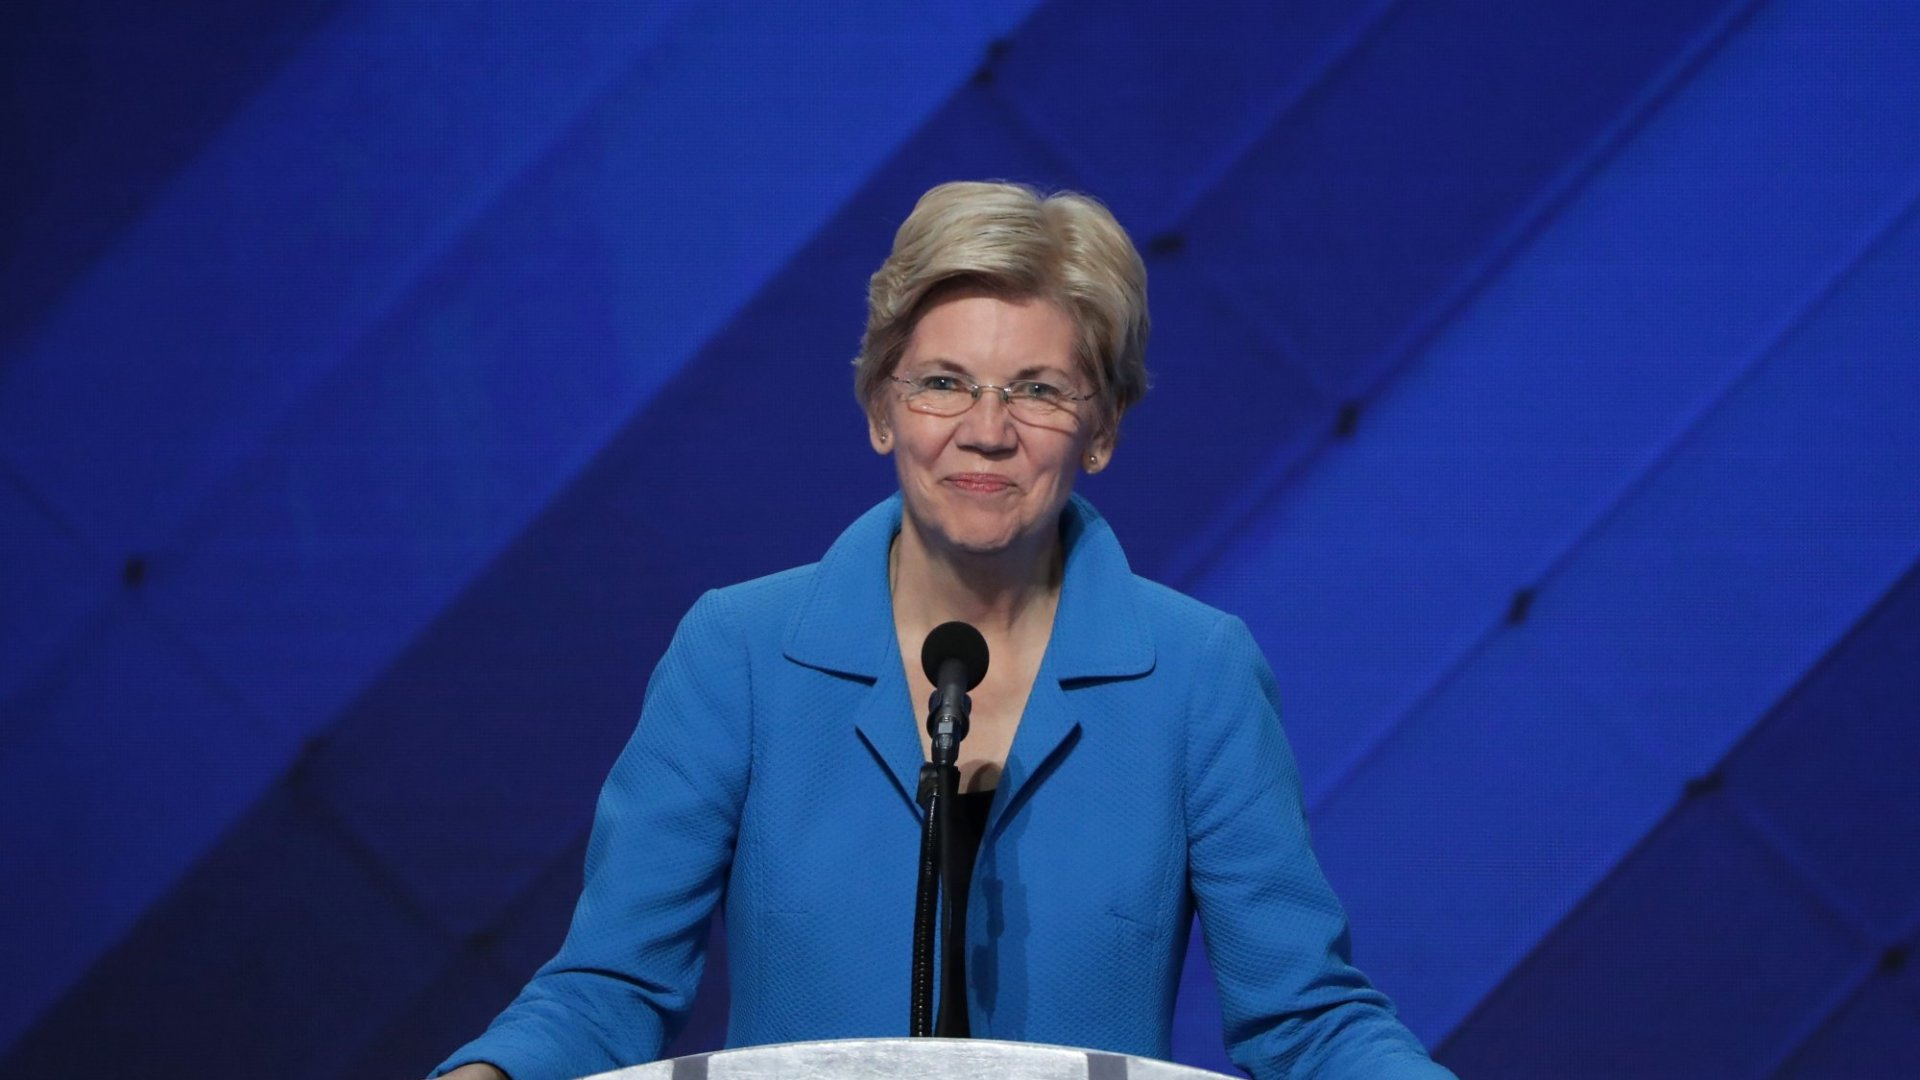 They're Saying Liz Warren Hurt Herself by Releasing Her DNA Test Results. Here's Why They're Wrong.